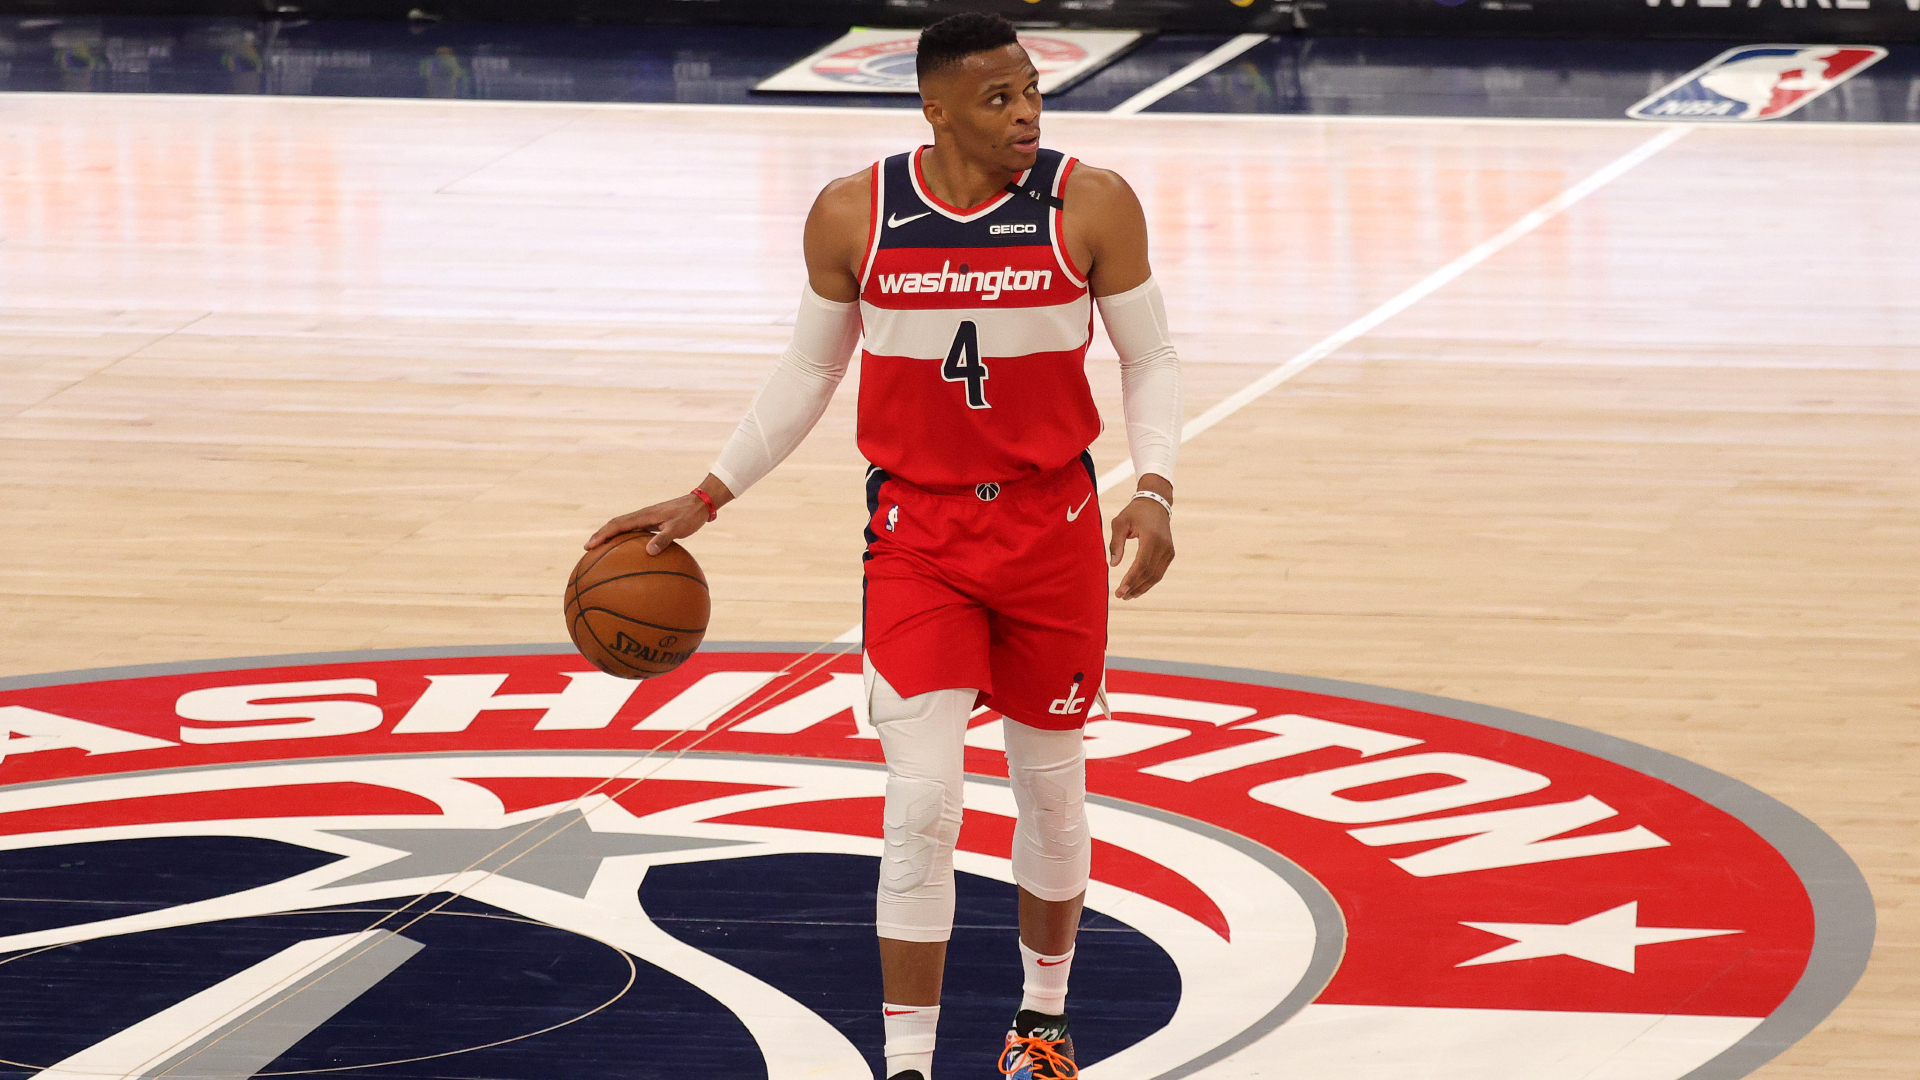 Westbrook joins illustrious company with triple-double as Wizards slump to 0-5